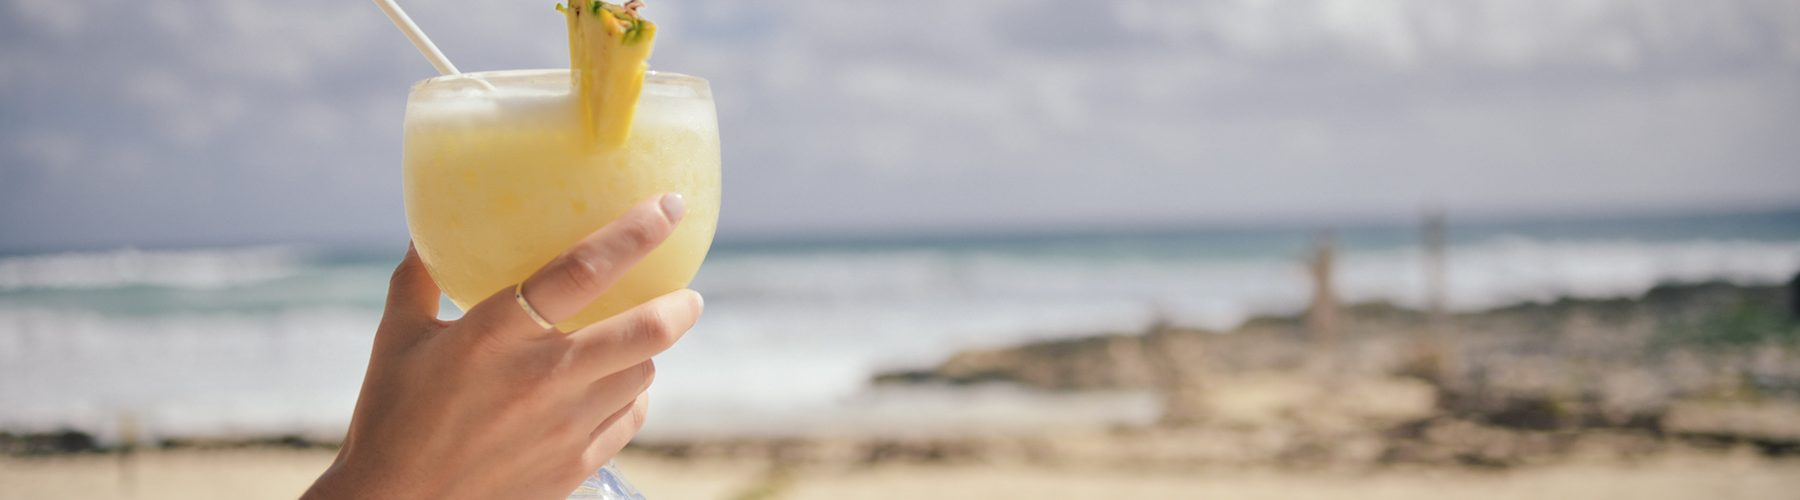 World Travel: 7 Signature Cocktails and Where to Find Them